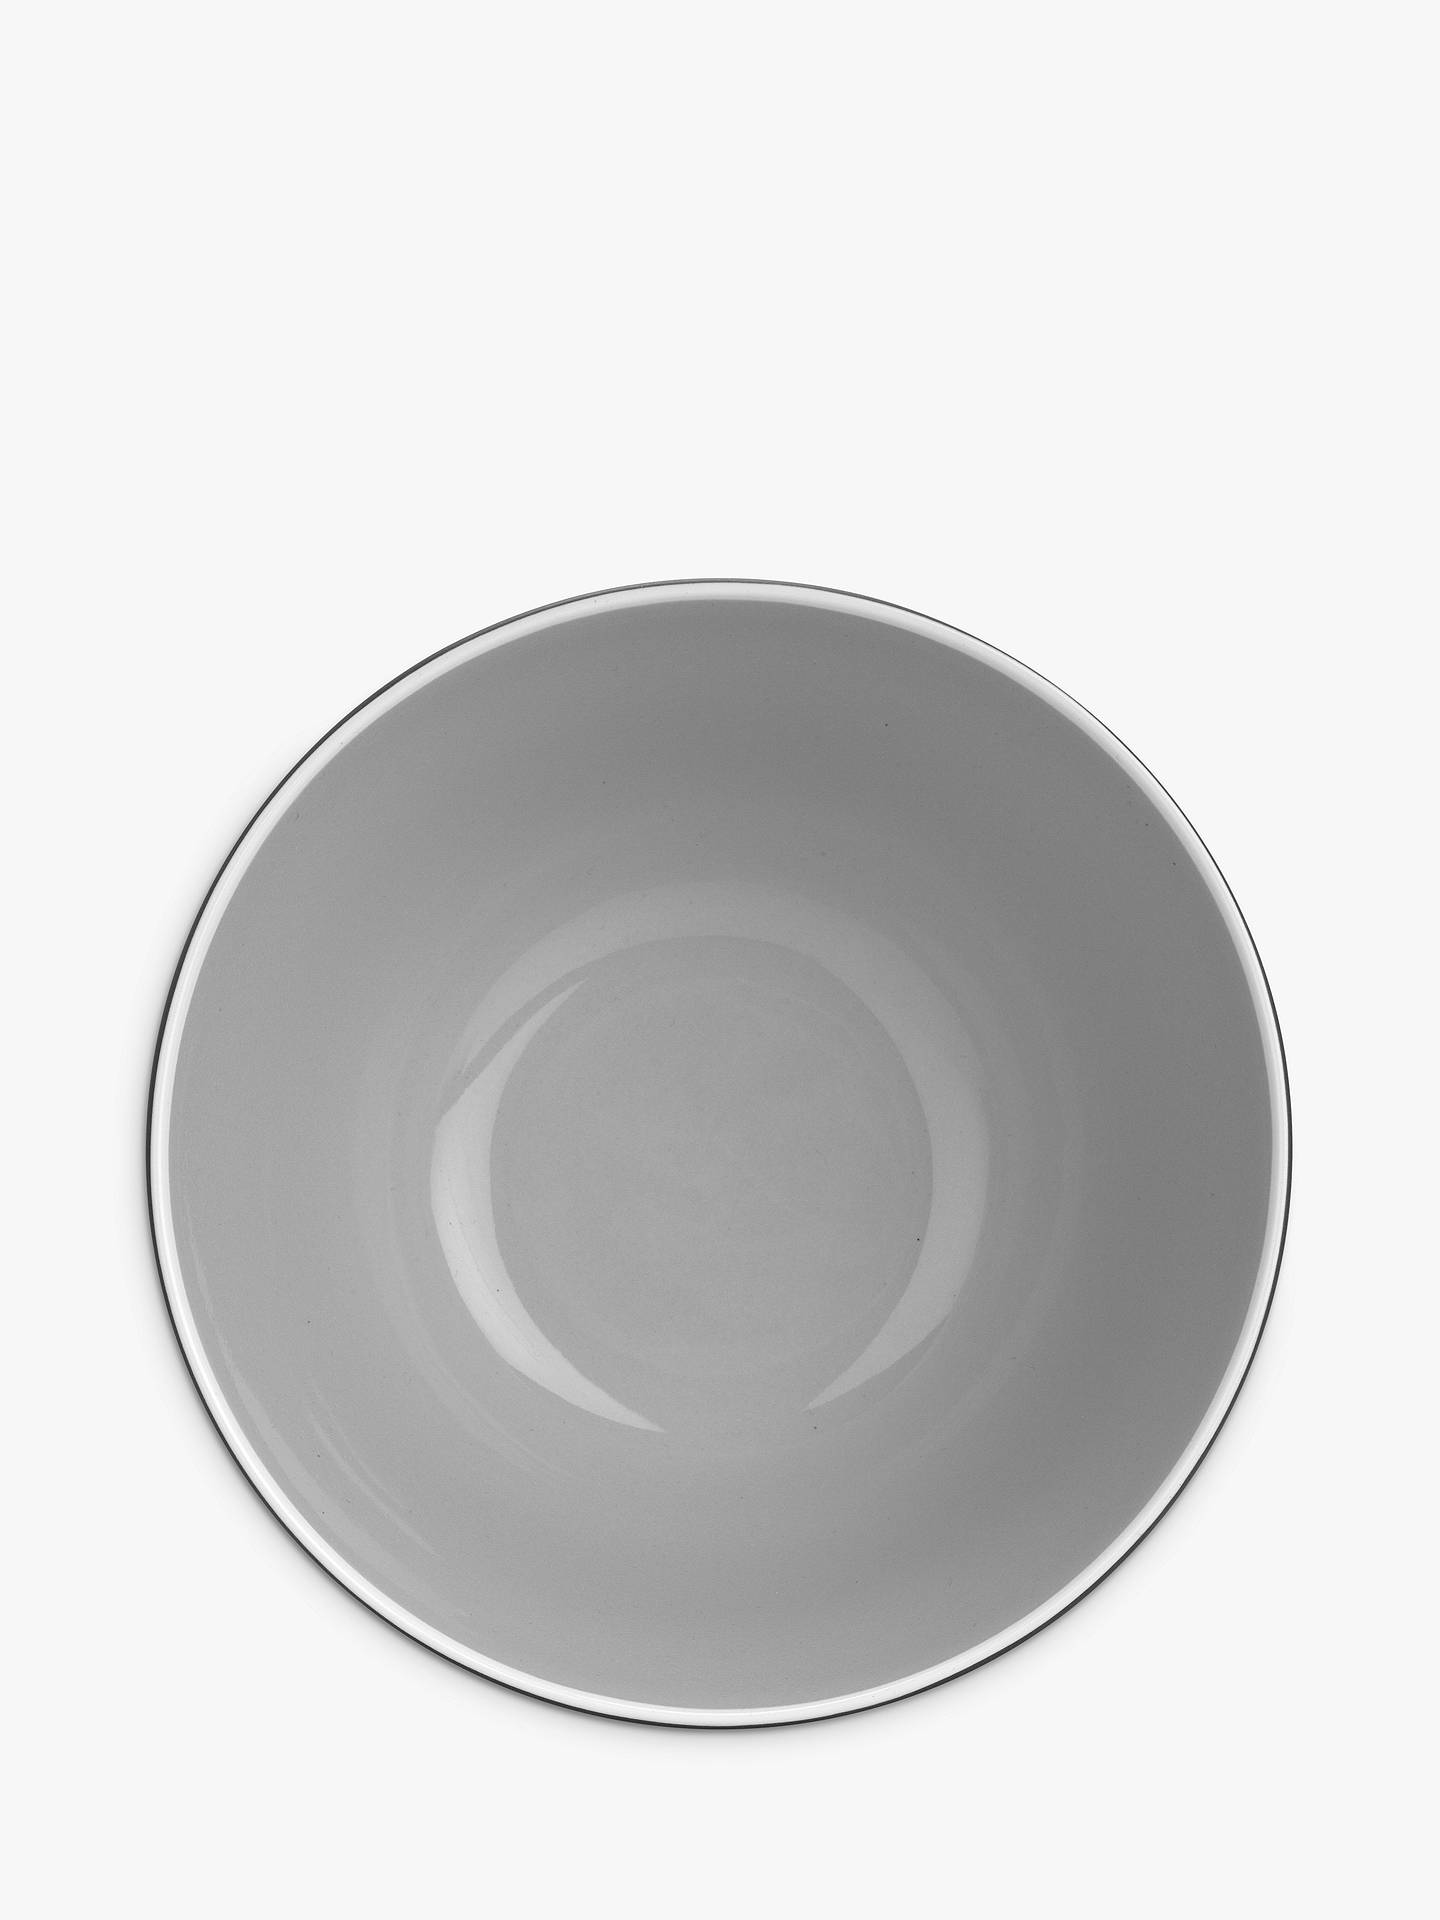 BuyJohn Lewis & Partners Puritan Dinnerware Set, 12 Piece, Grey Online at johnlewis.com